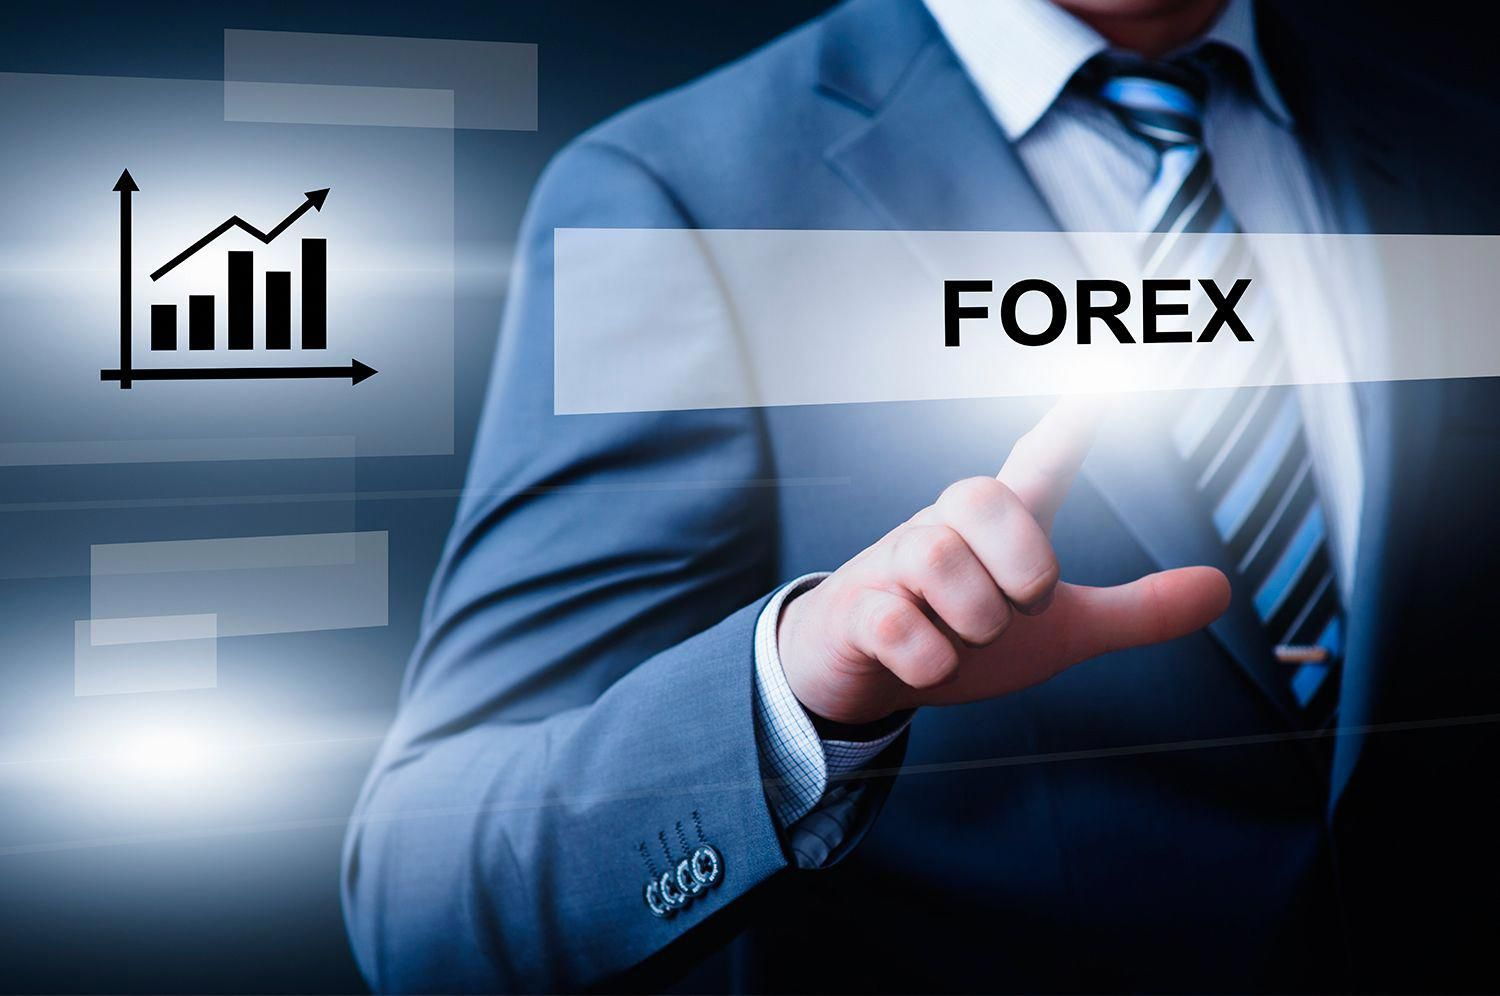 Best forex signals sms a professional trader in